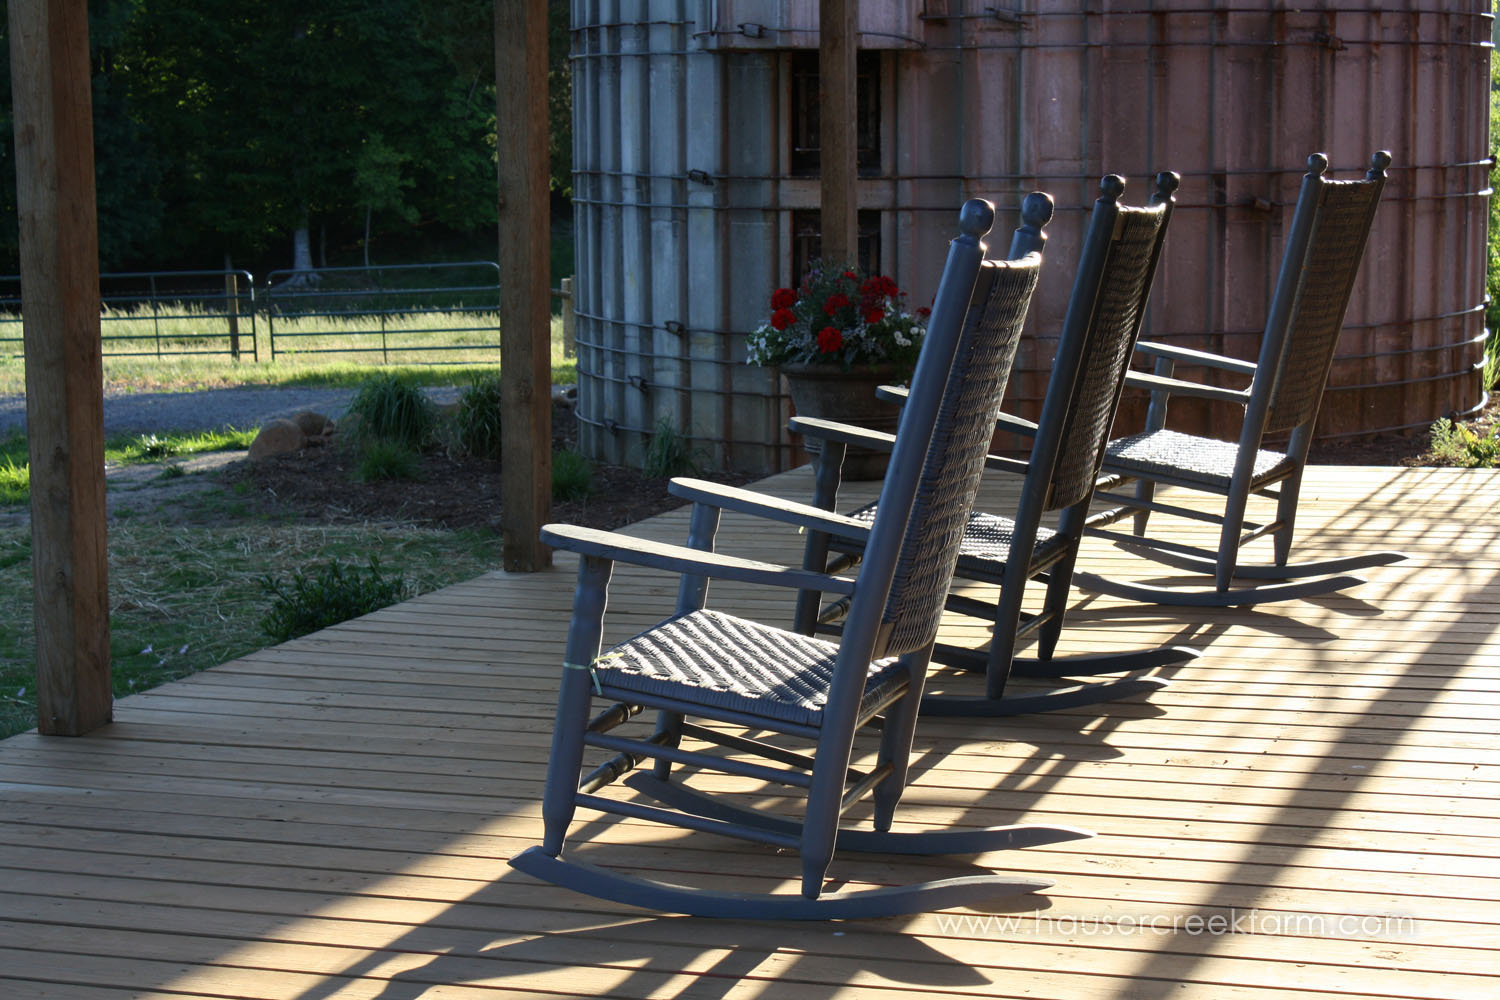 rocking-chairs-on-rustic-porch-outside-farmhouse-IMG_5018 (2).jpg